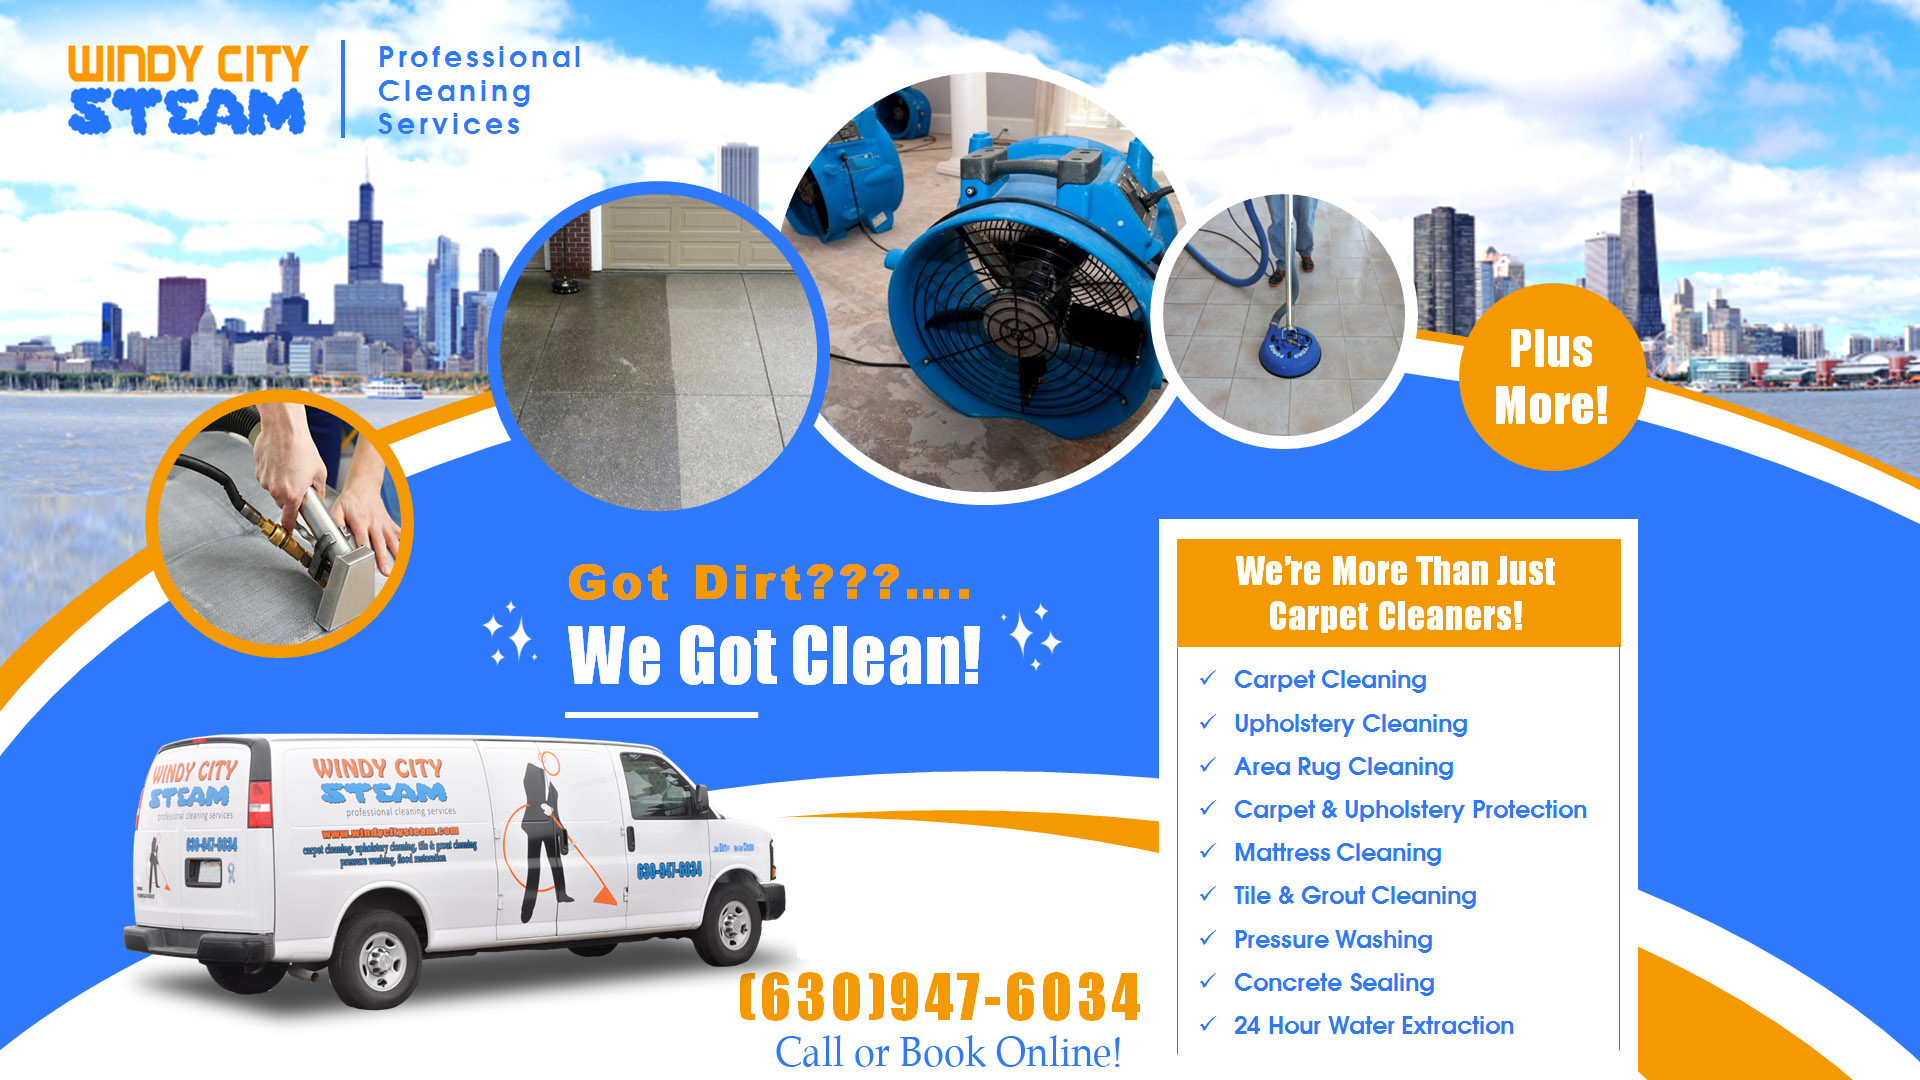 Windy City Steam Carpet Cleaners